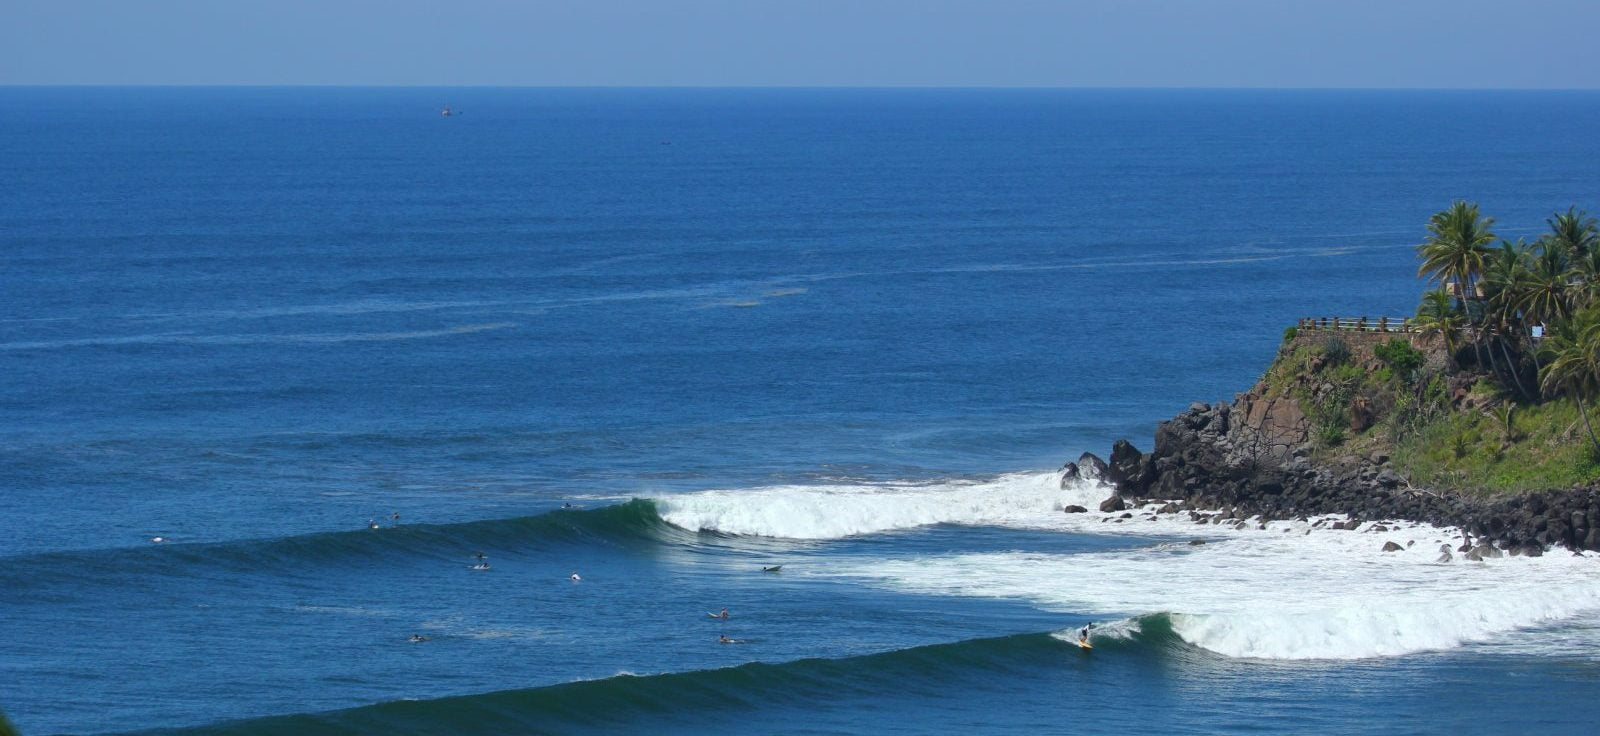 Surf and Adventure Trip El Salvador_las flores point break